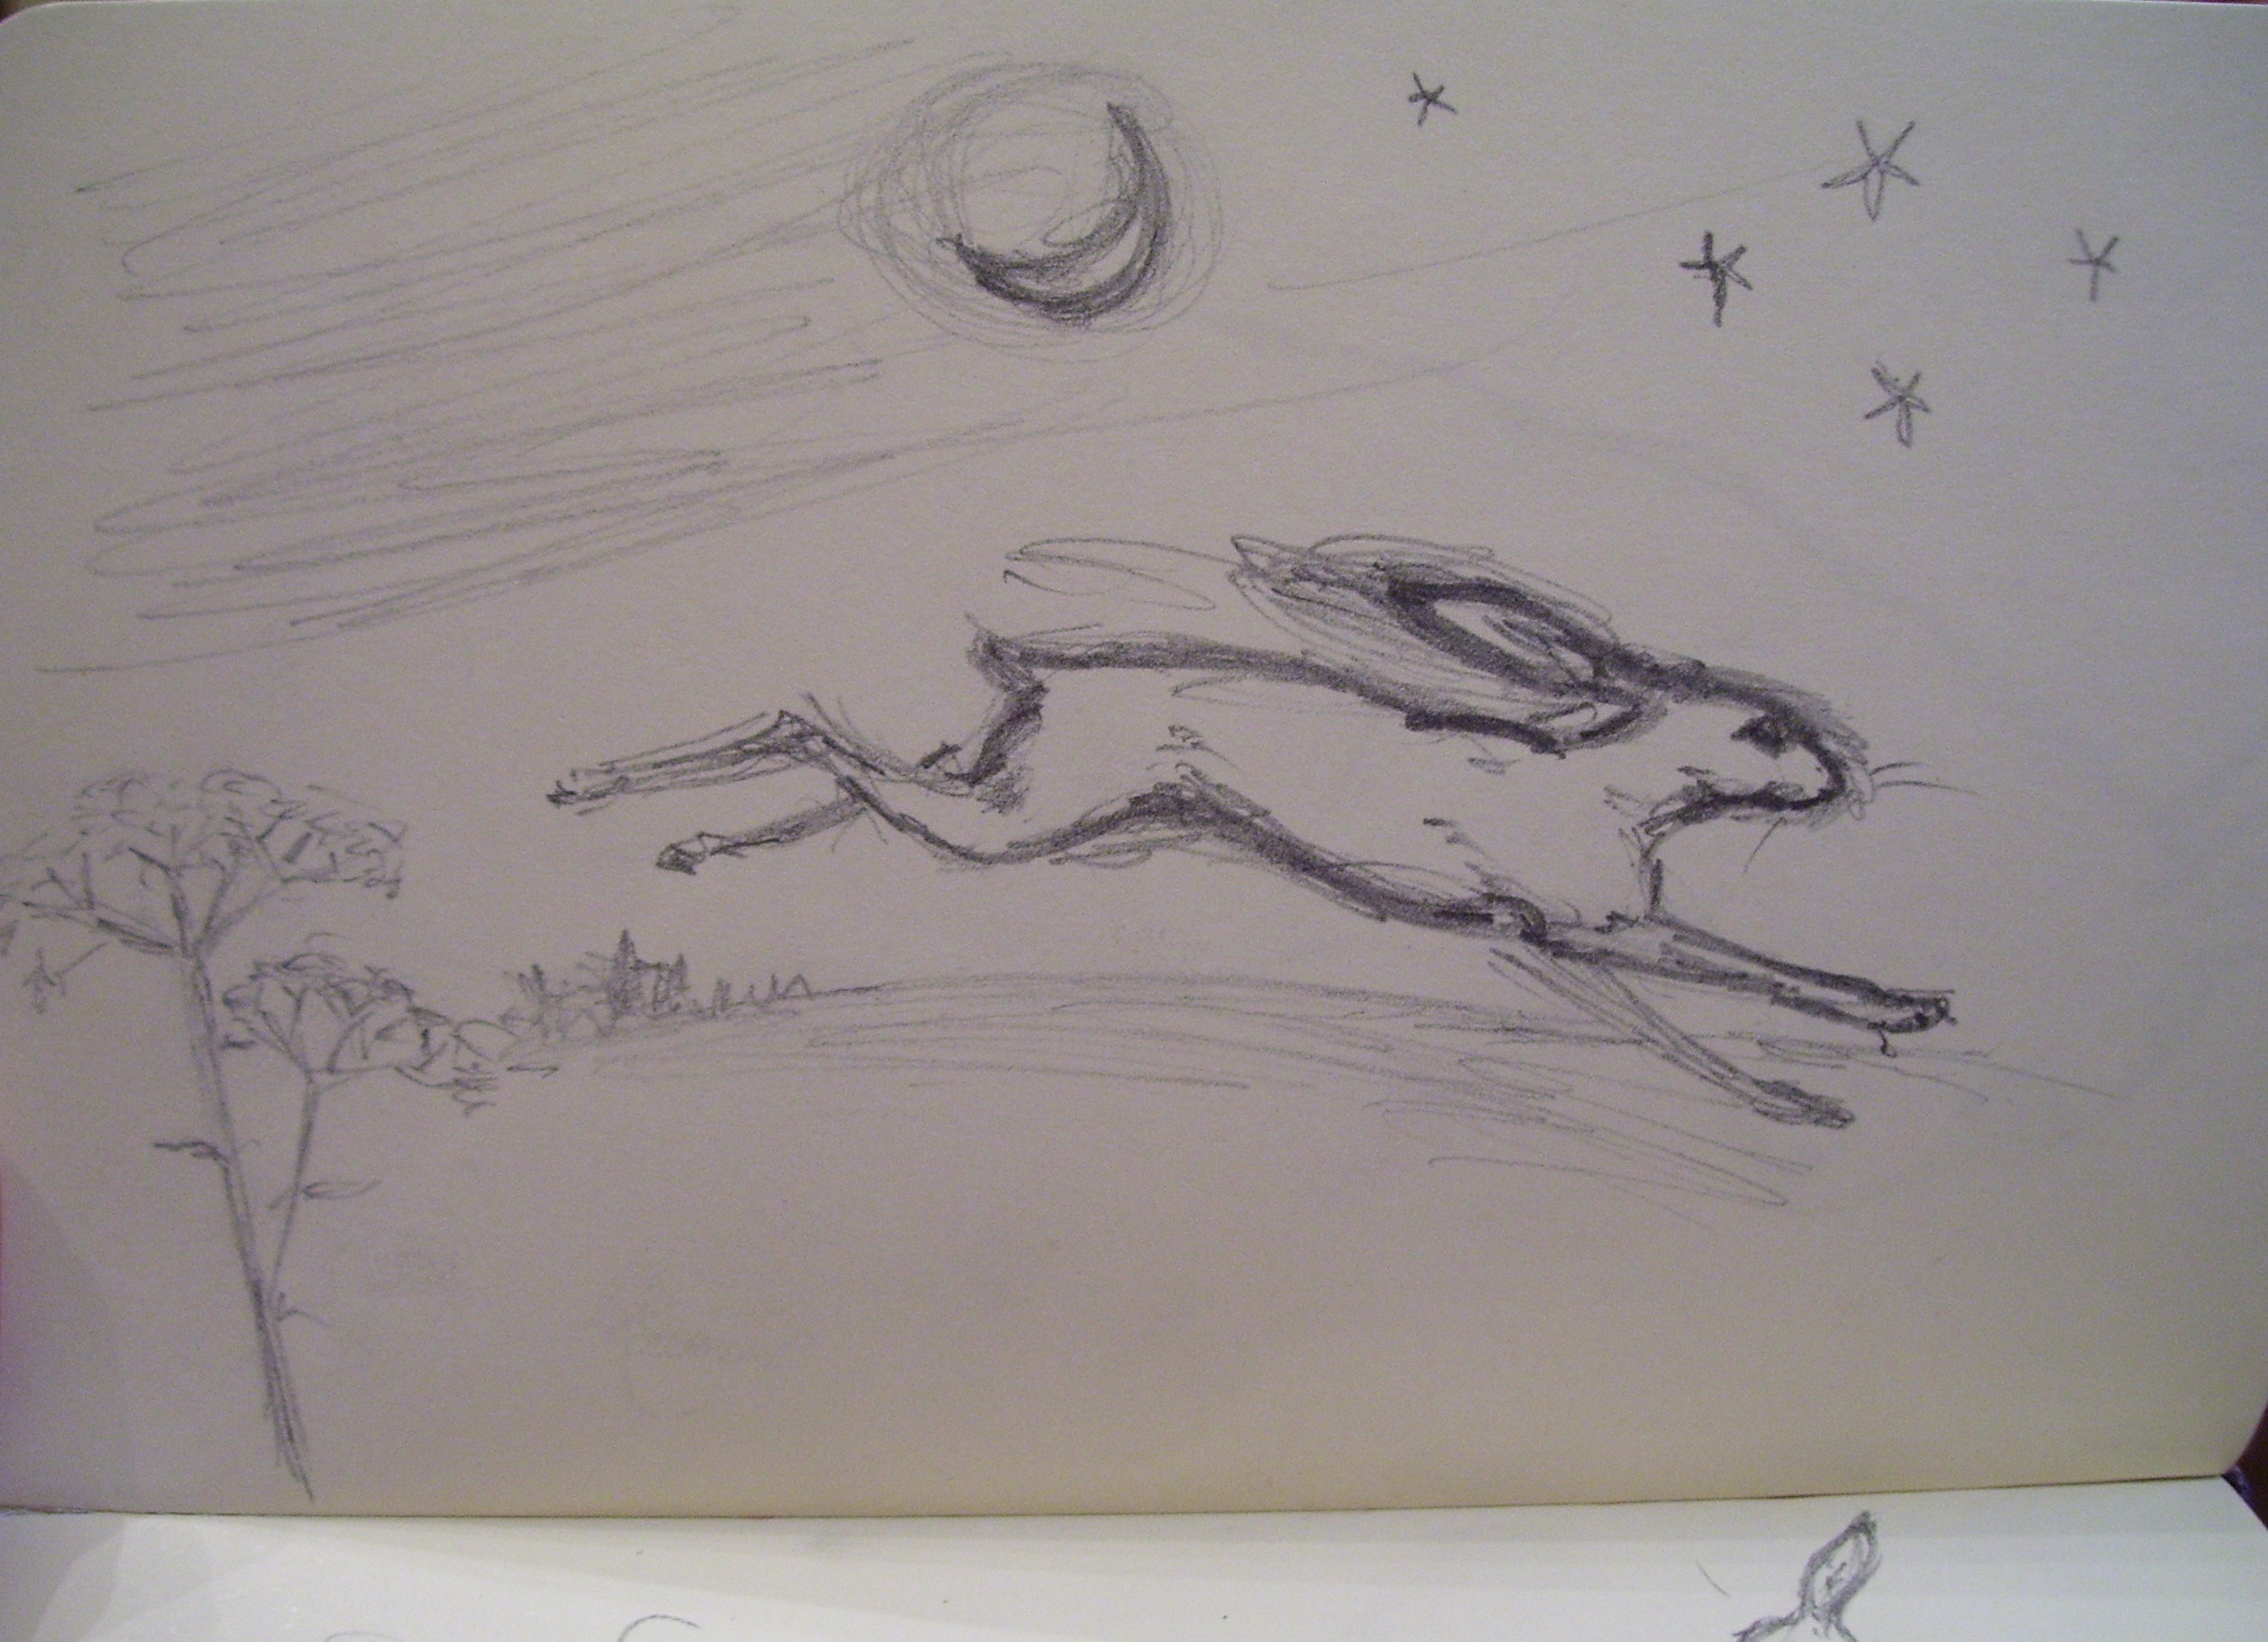 Hare Line Drawings The Calligraphy of Hares